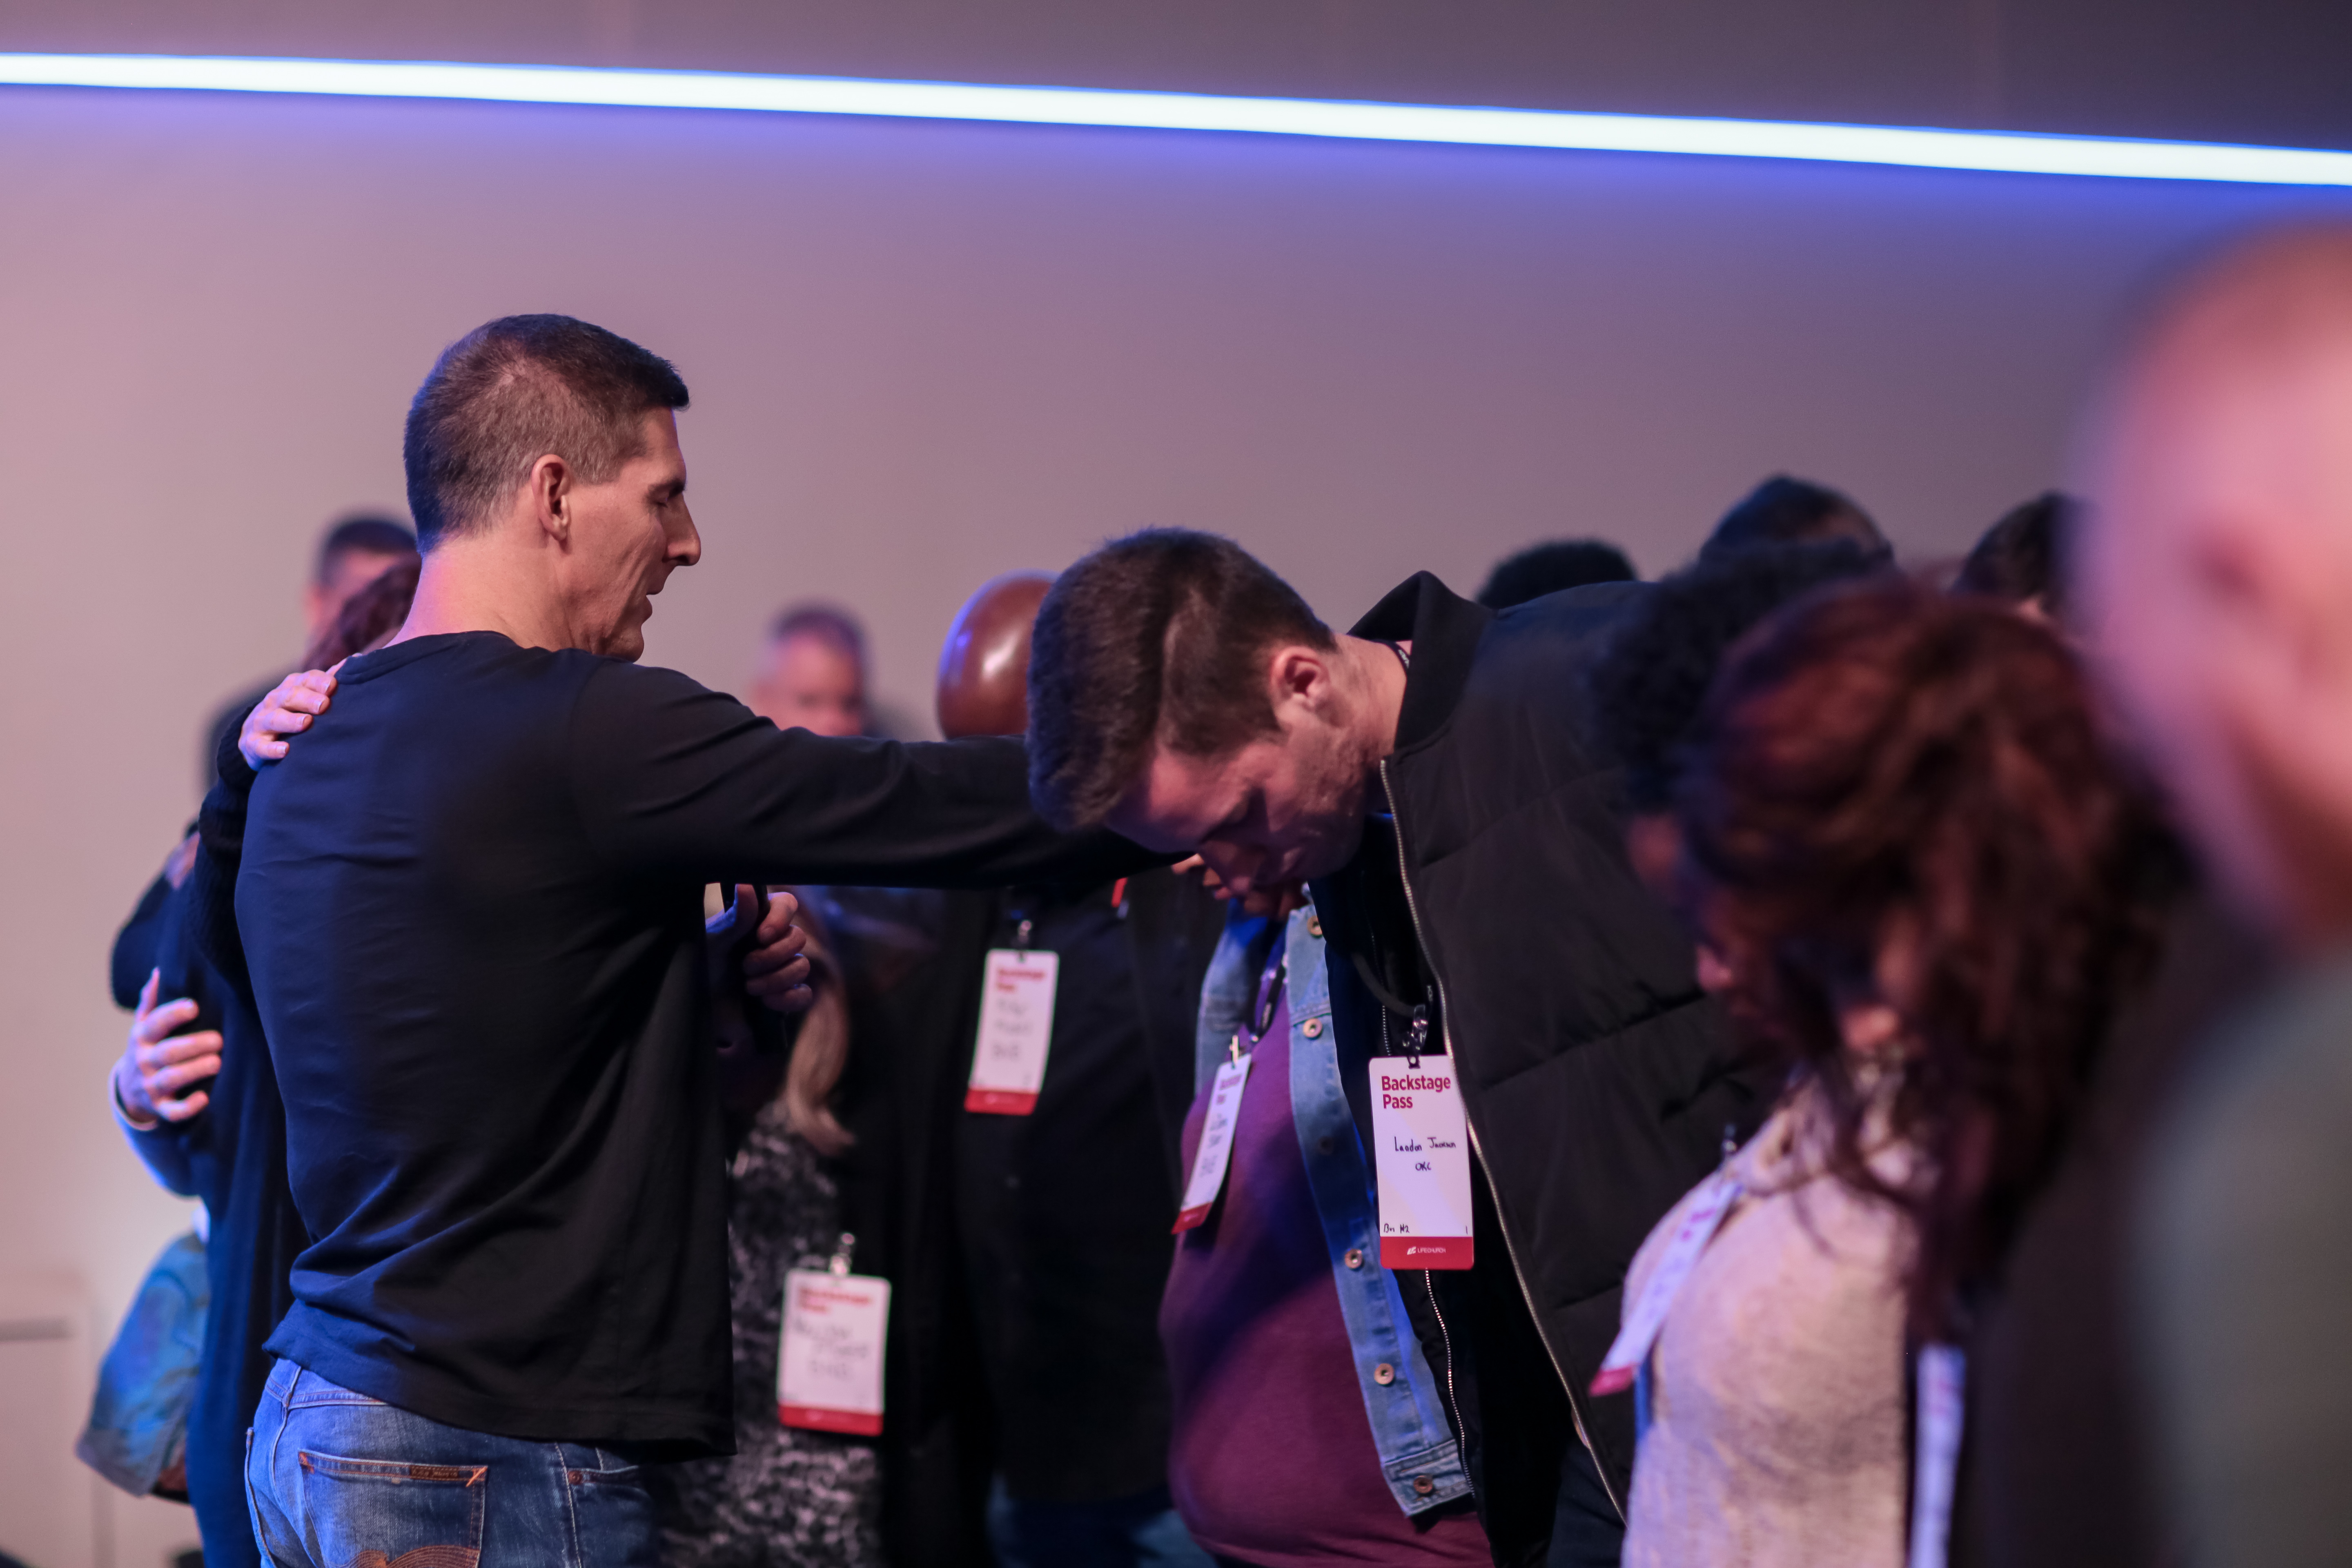 Craig Groeschel praying with congregation